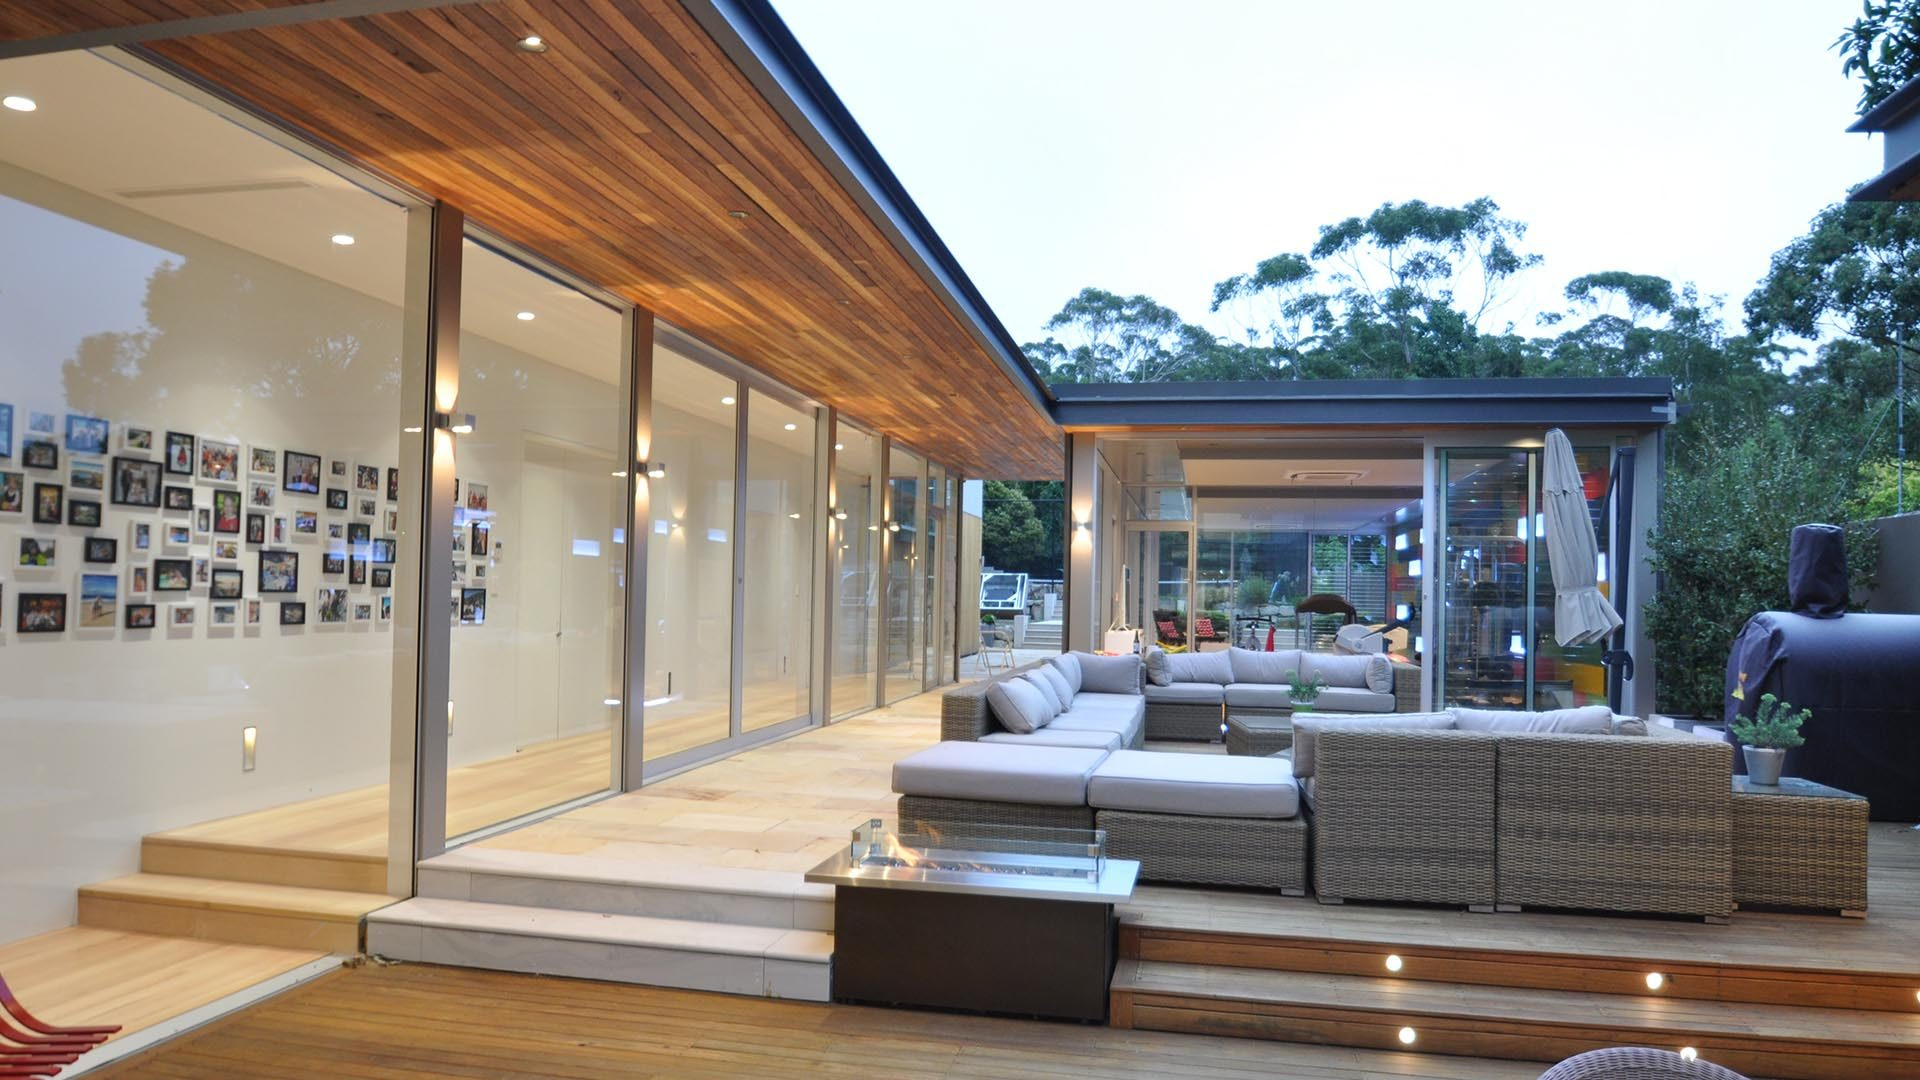 Mittagong Deck and outdoor entertaining area, with outdoor seating area